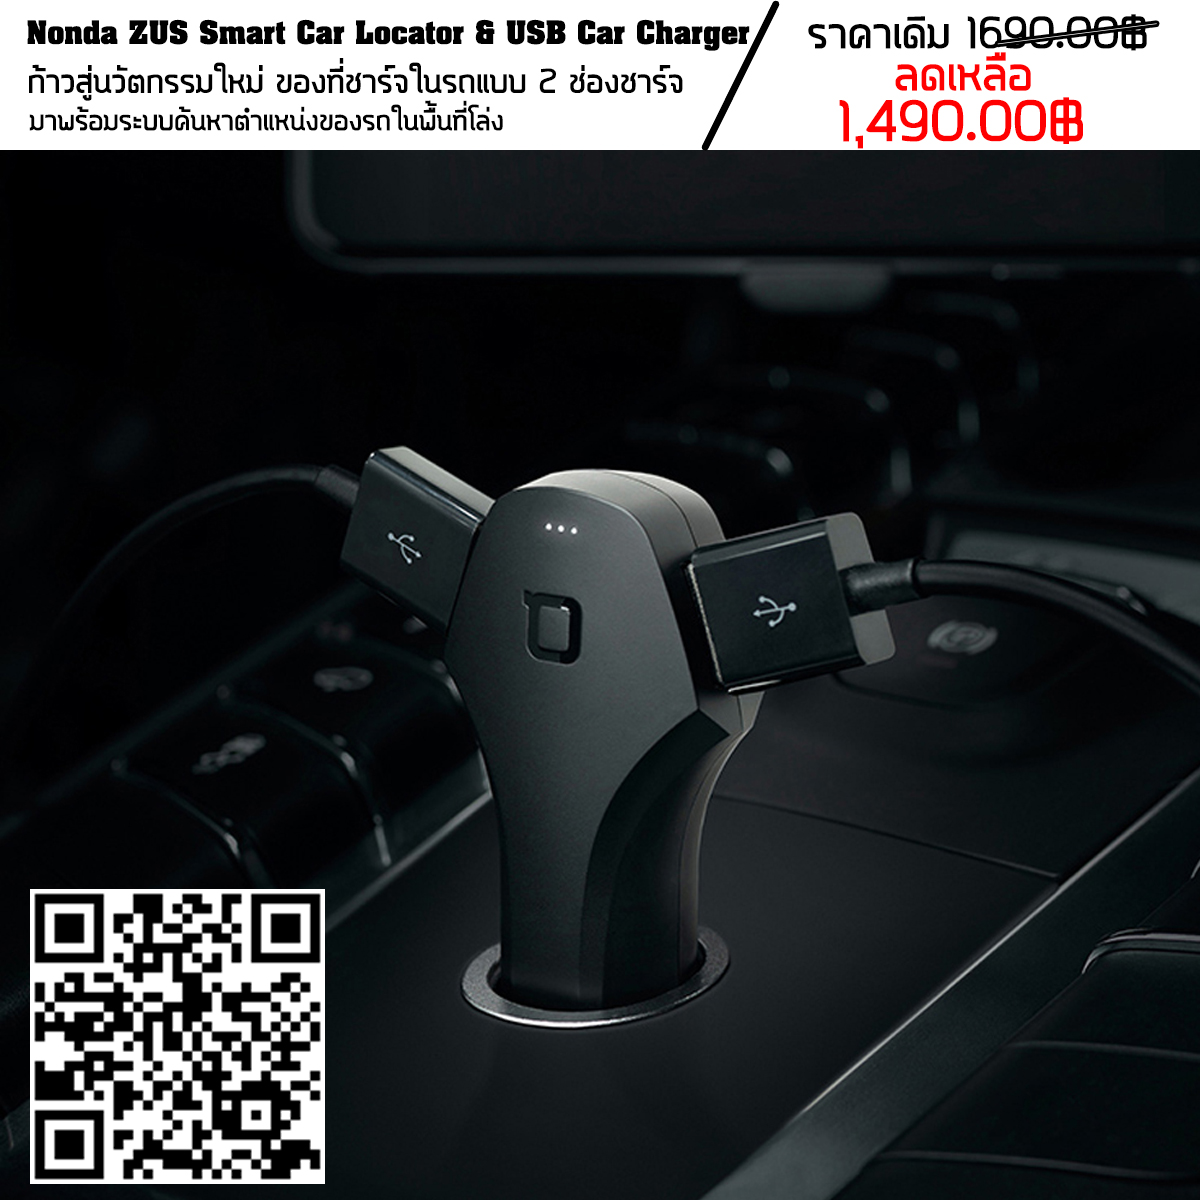 nonda-zus-smart-car-locator-usb-car-charger